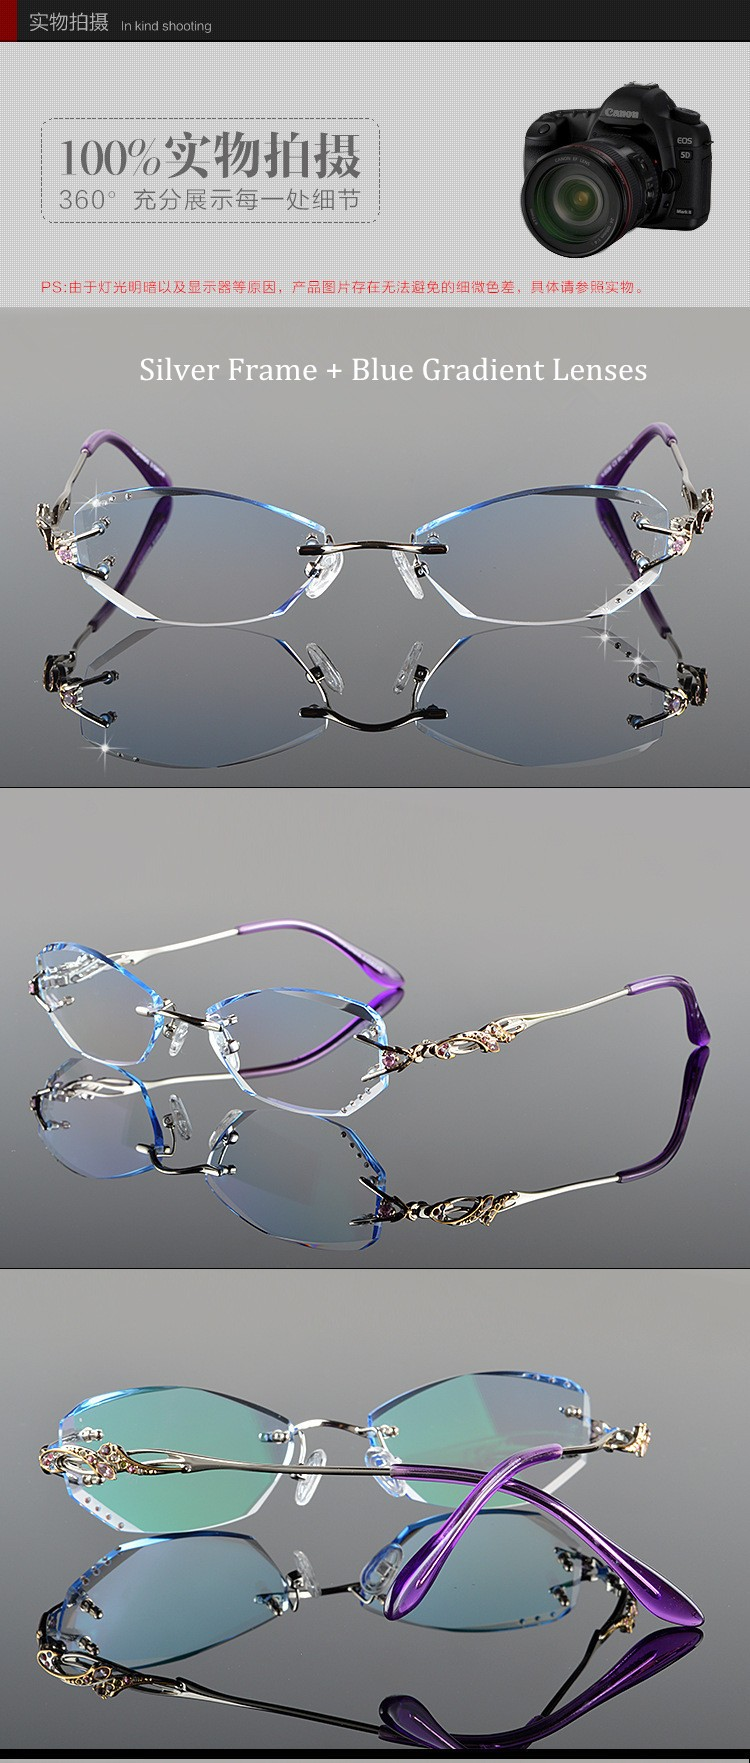 aff9ef9010 Luxury Tint Lenses Myopia and Reading Glasses Diamond Cutting Rimless  Prescription Glasses Frame for Women